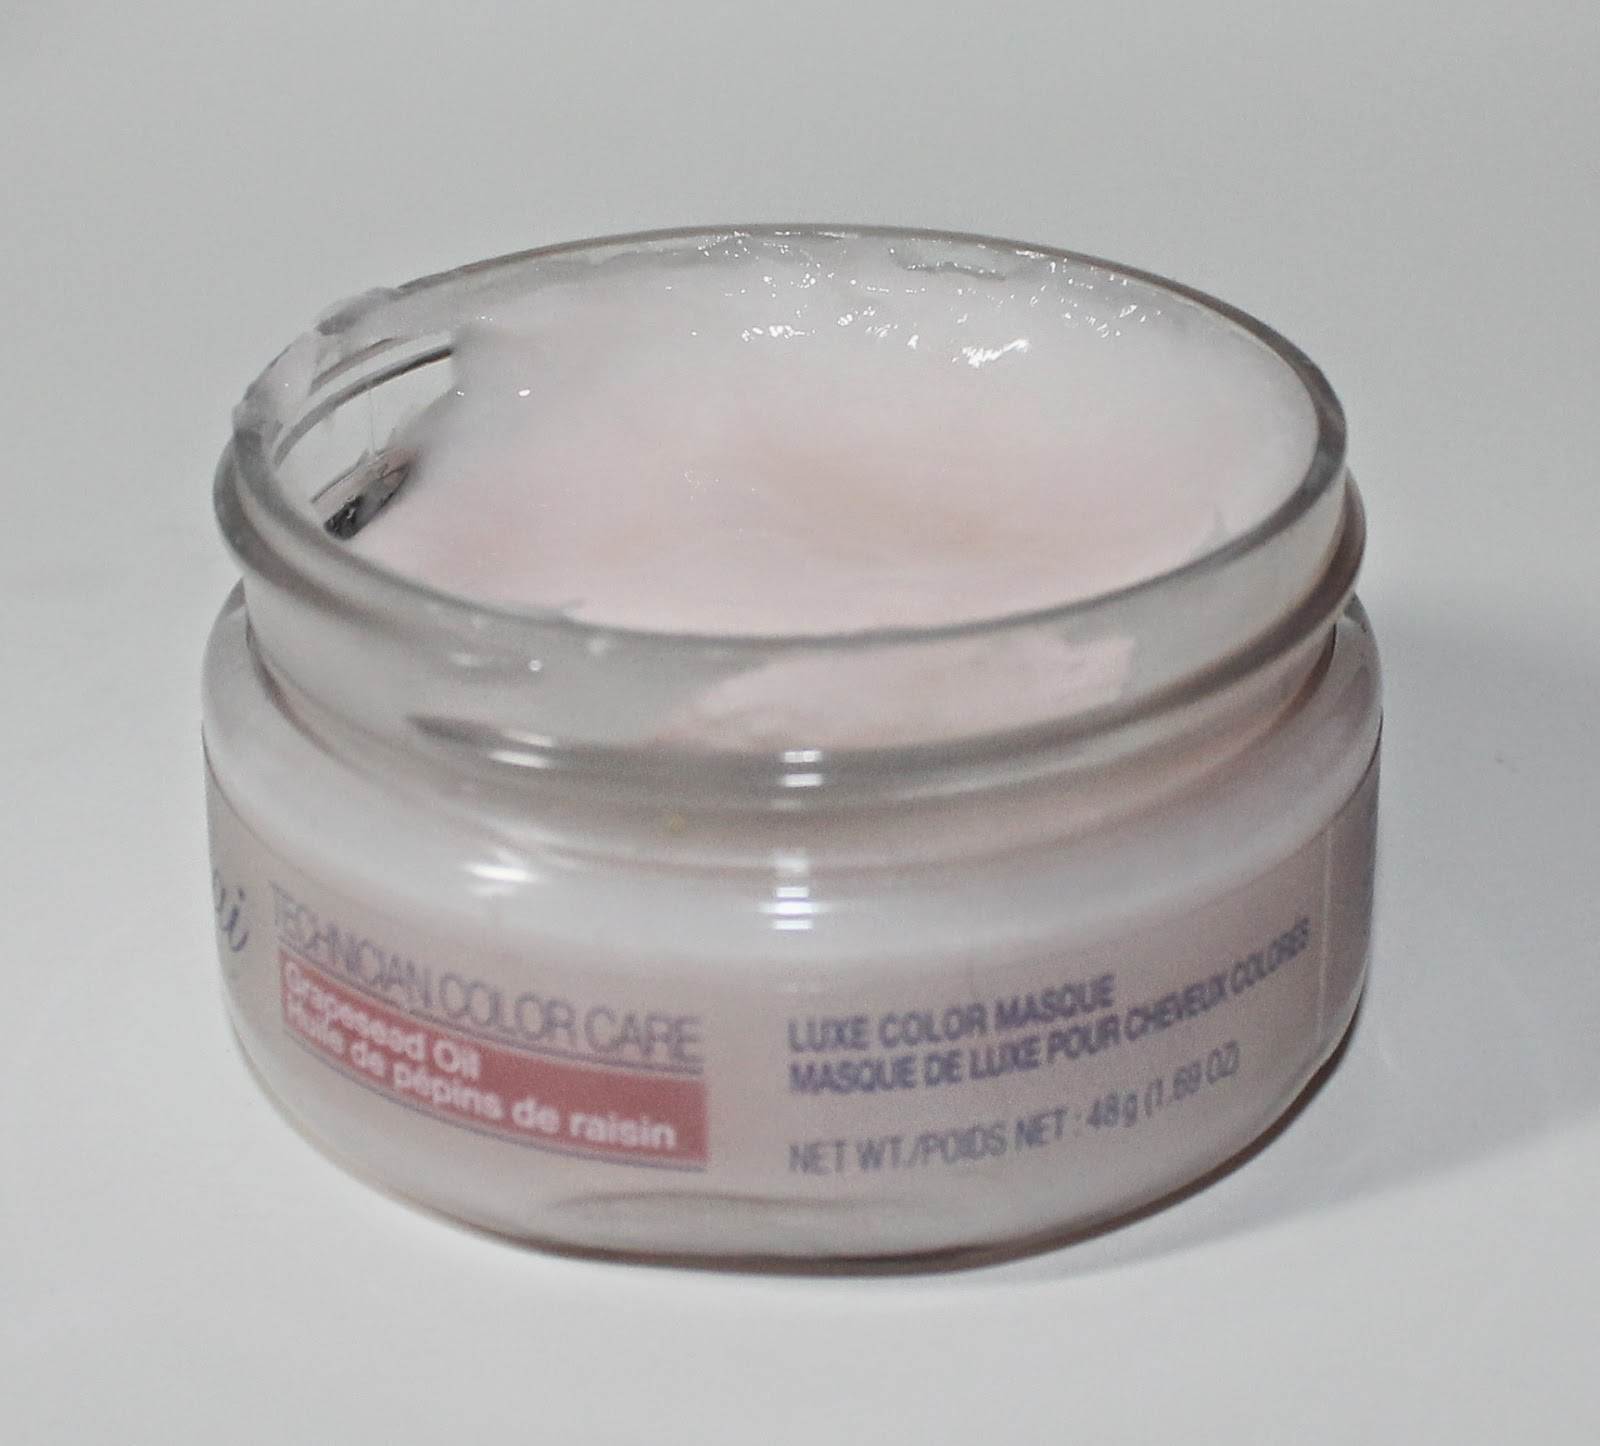 Fekkai Technician Color Care Masque